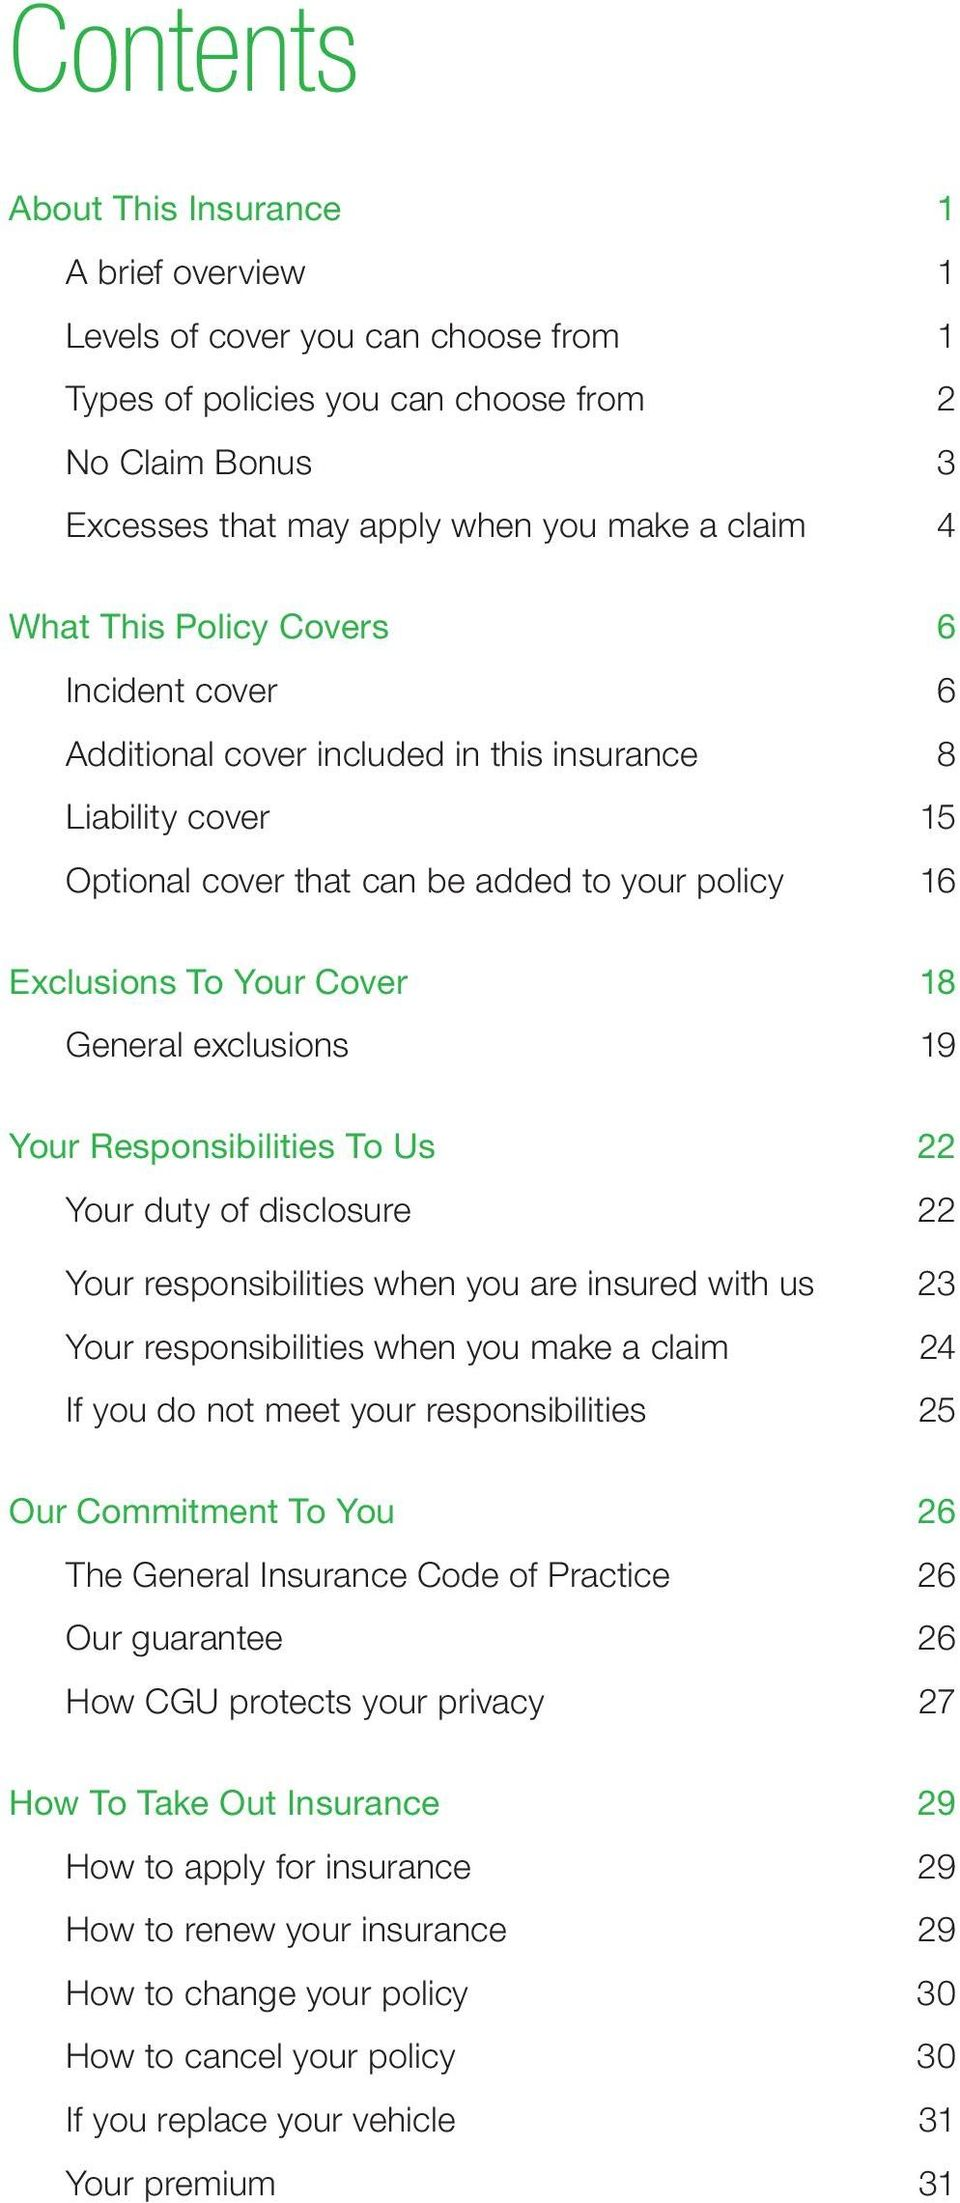 exclusions 19 Your Responsibilities To Us 22 Your duty of disclosure 22 Your responsibilities when you are insured with us 23 Your responsibilities when you make a claim 24 If you do not meet your